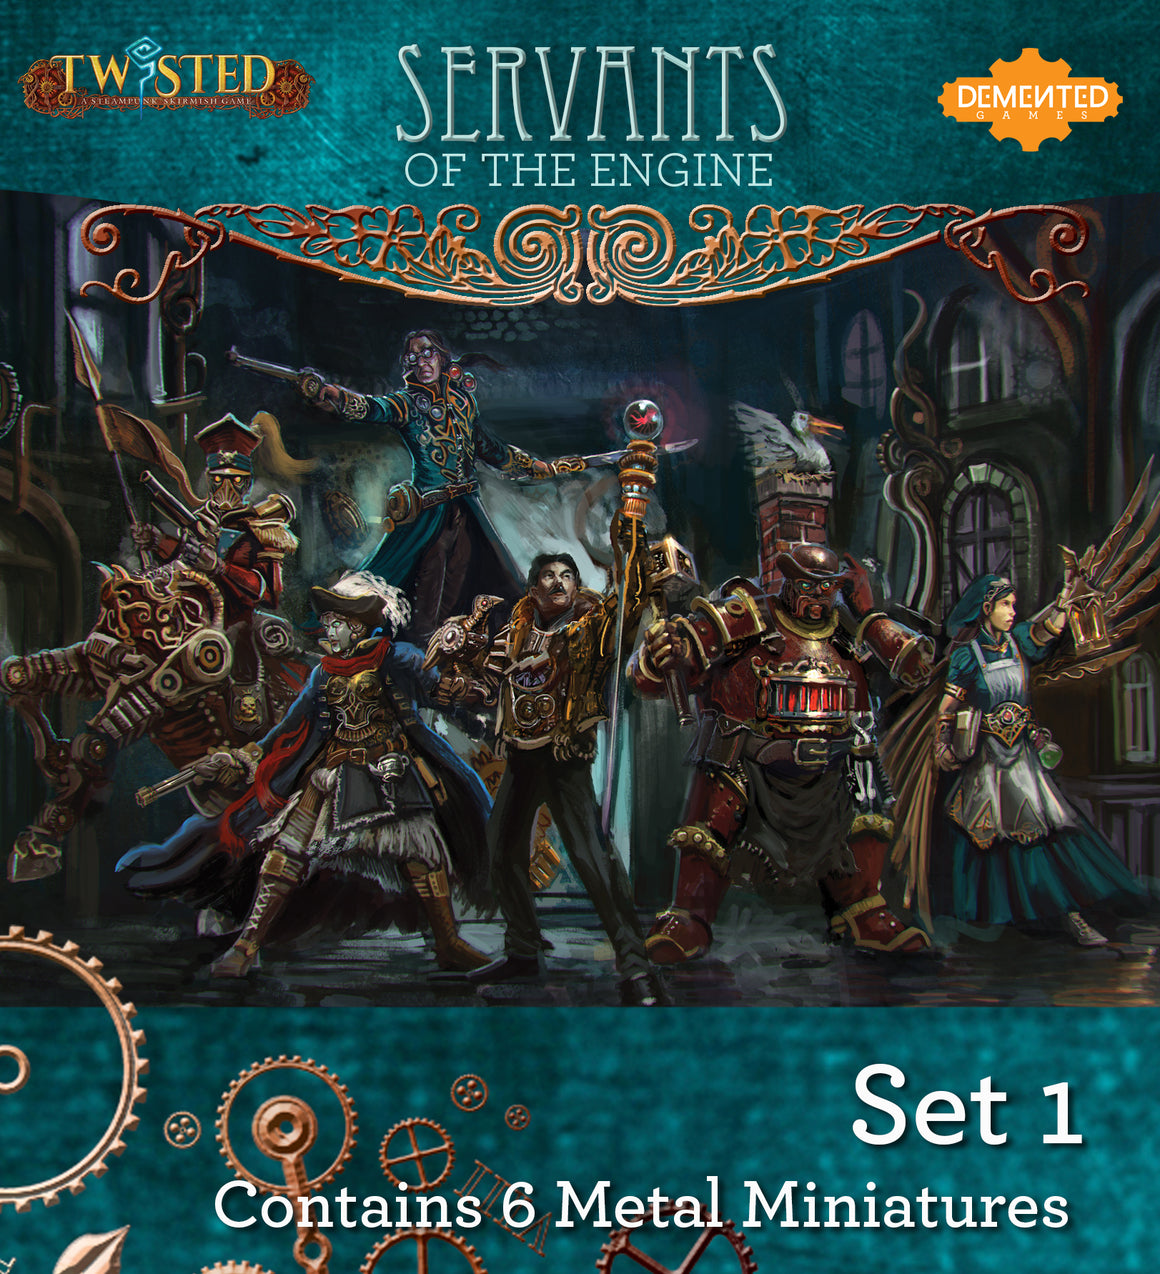 Servants of the Engine Box Set 1